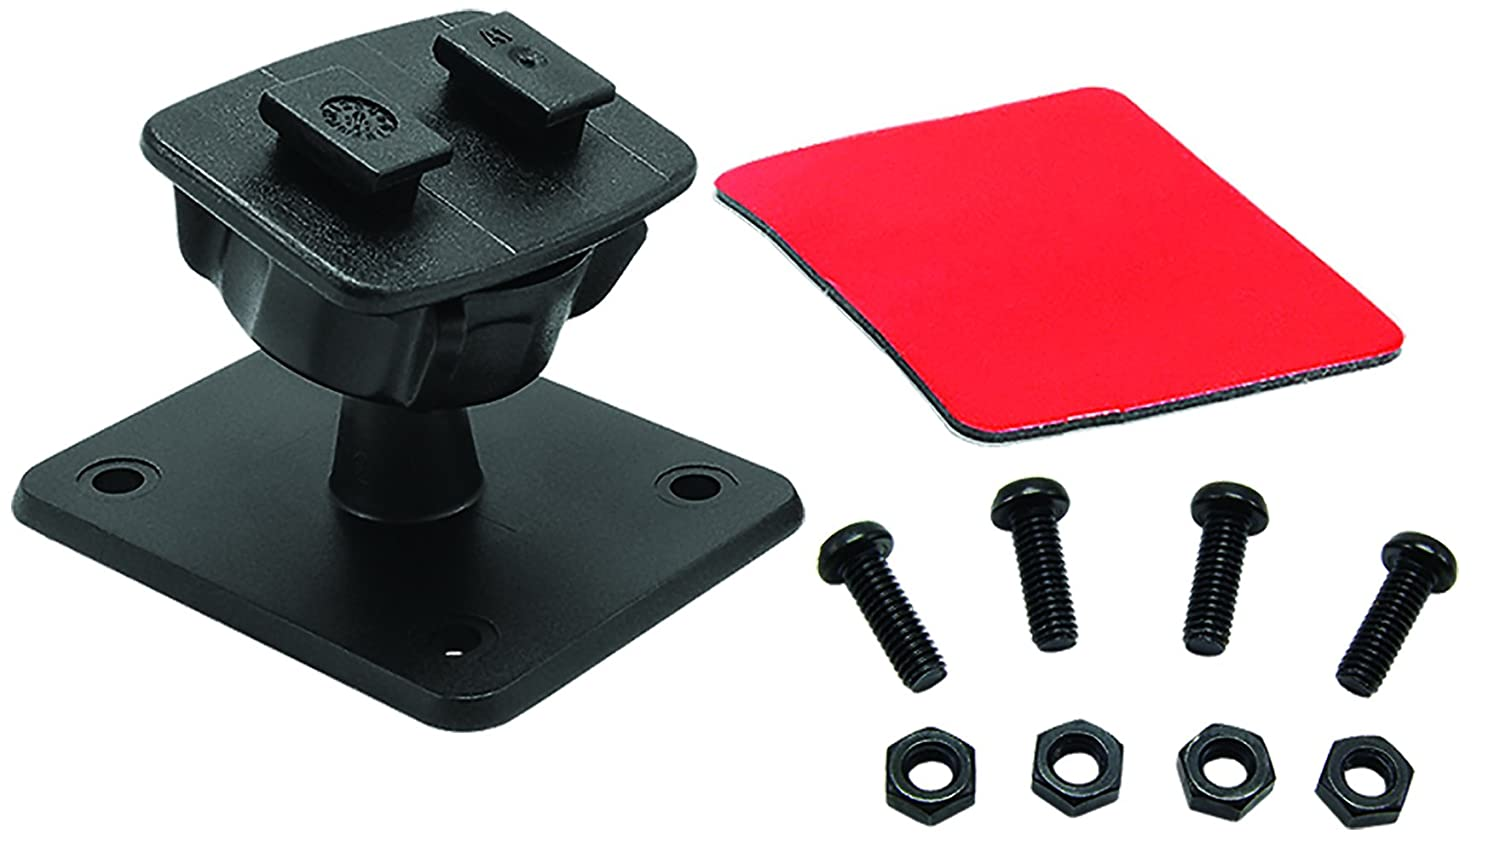 APAMPSVHBWS ARKON Car Mount VSM Kit with Drill Base for Car Installation Arkon Dual T Pattern and Garmin Arkon Resources Inc